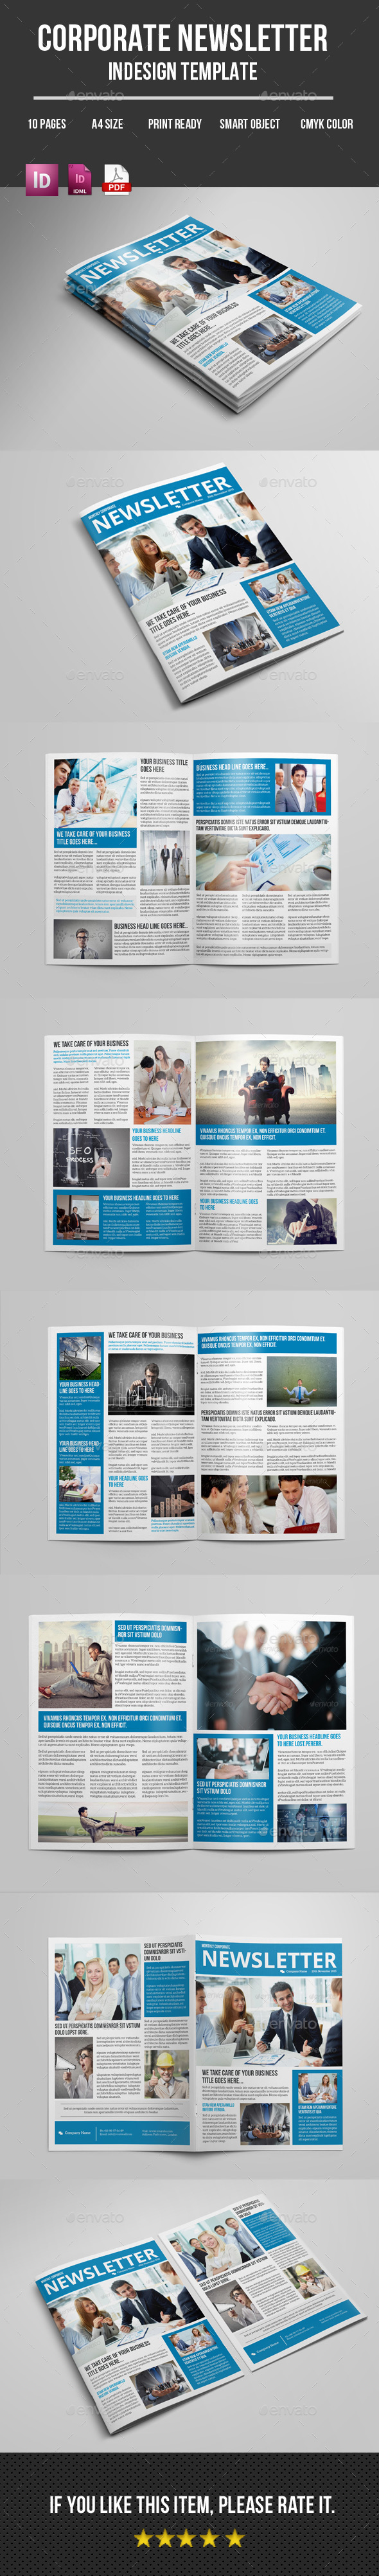 Business Newsletter Indesign Template - Newsletters Print Templates